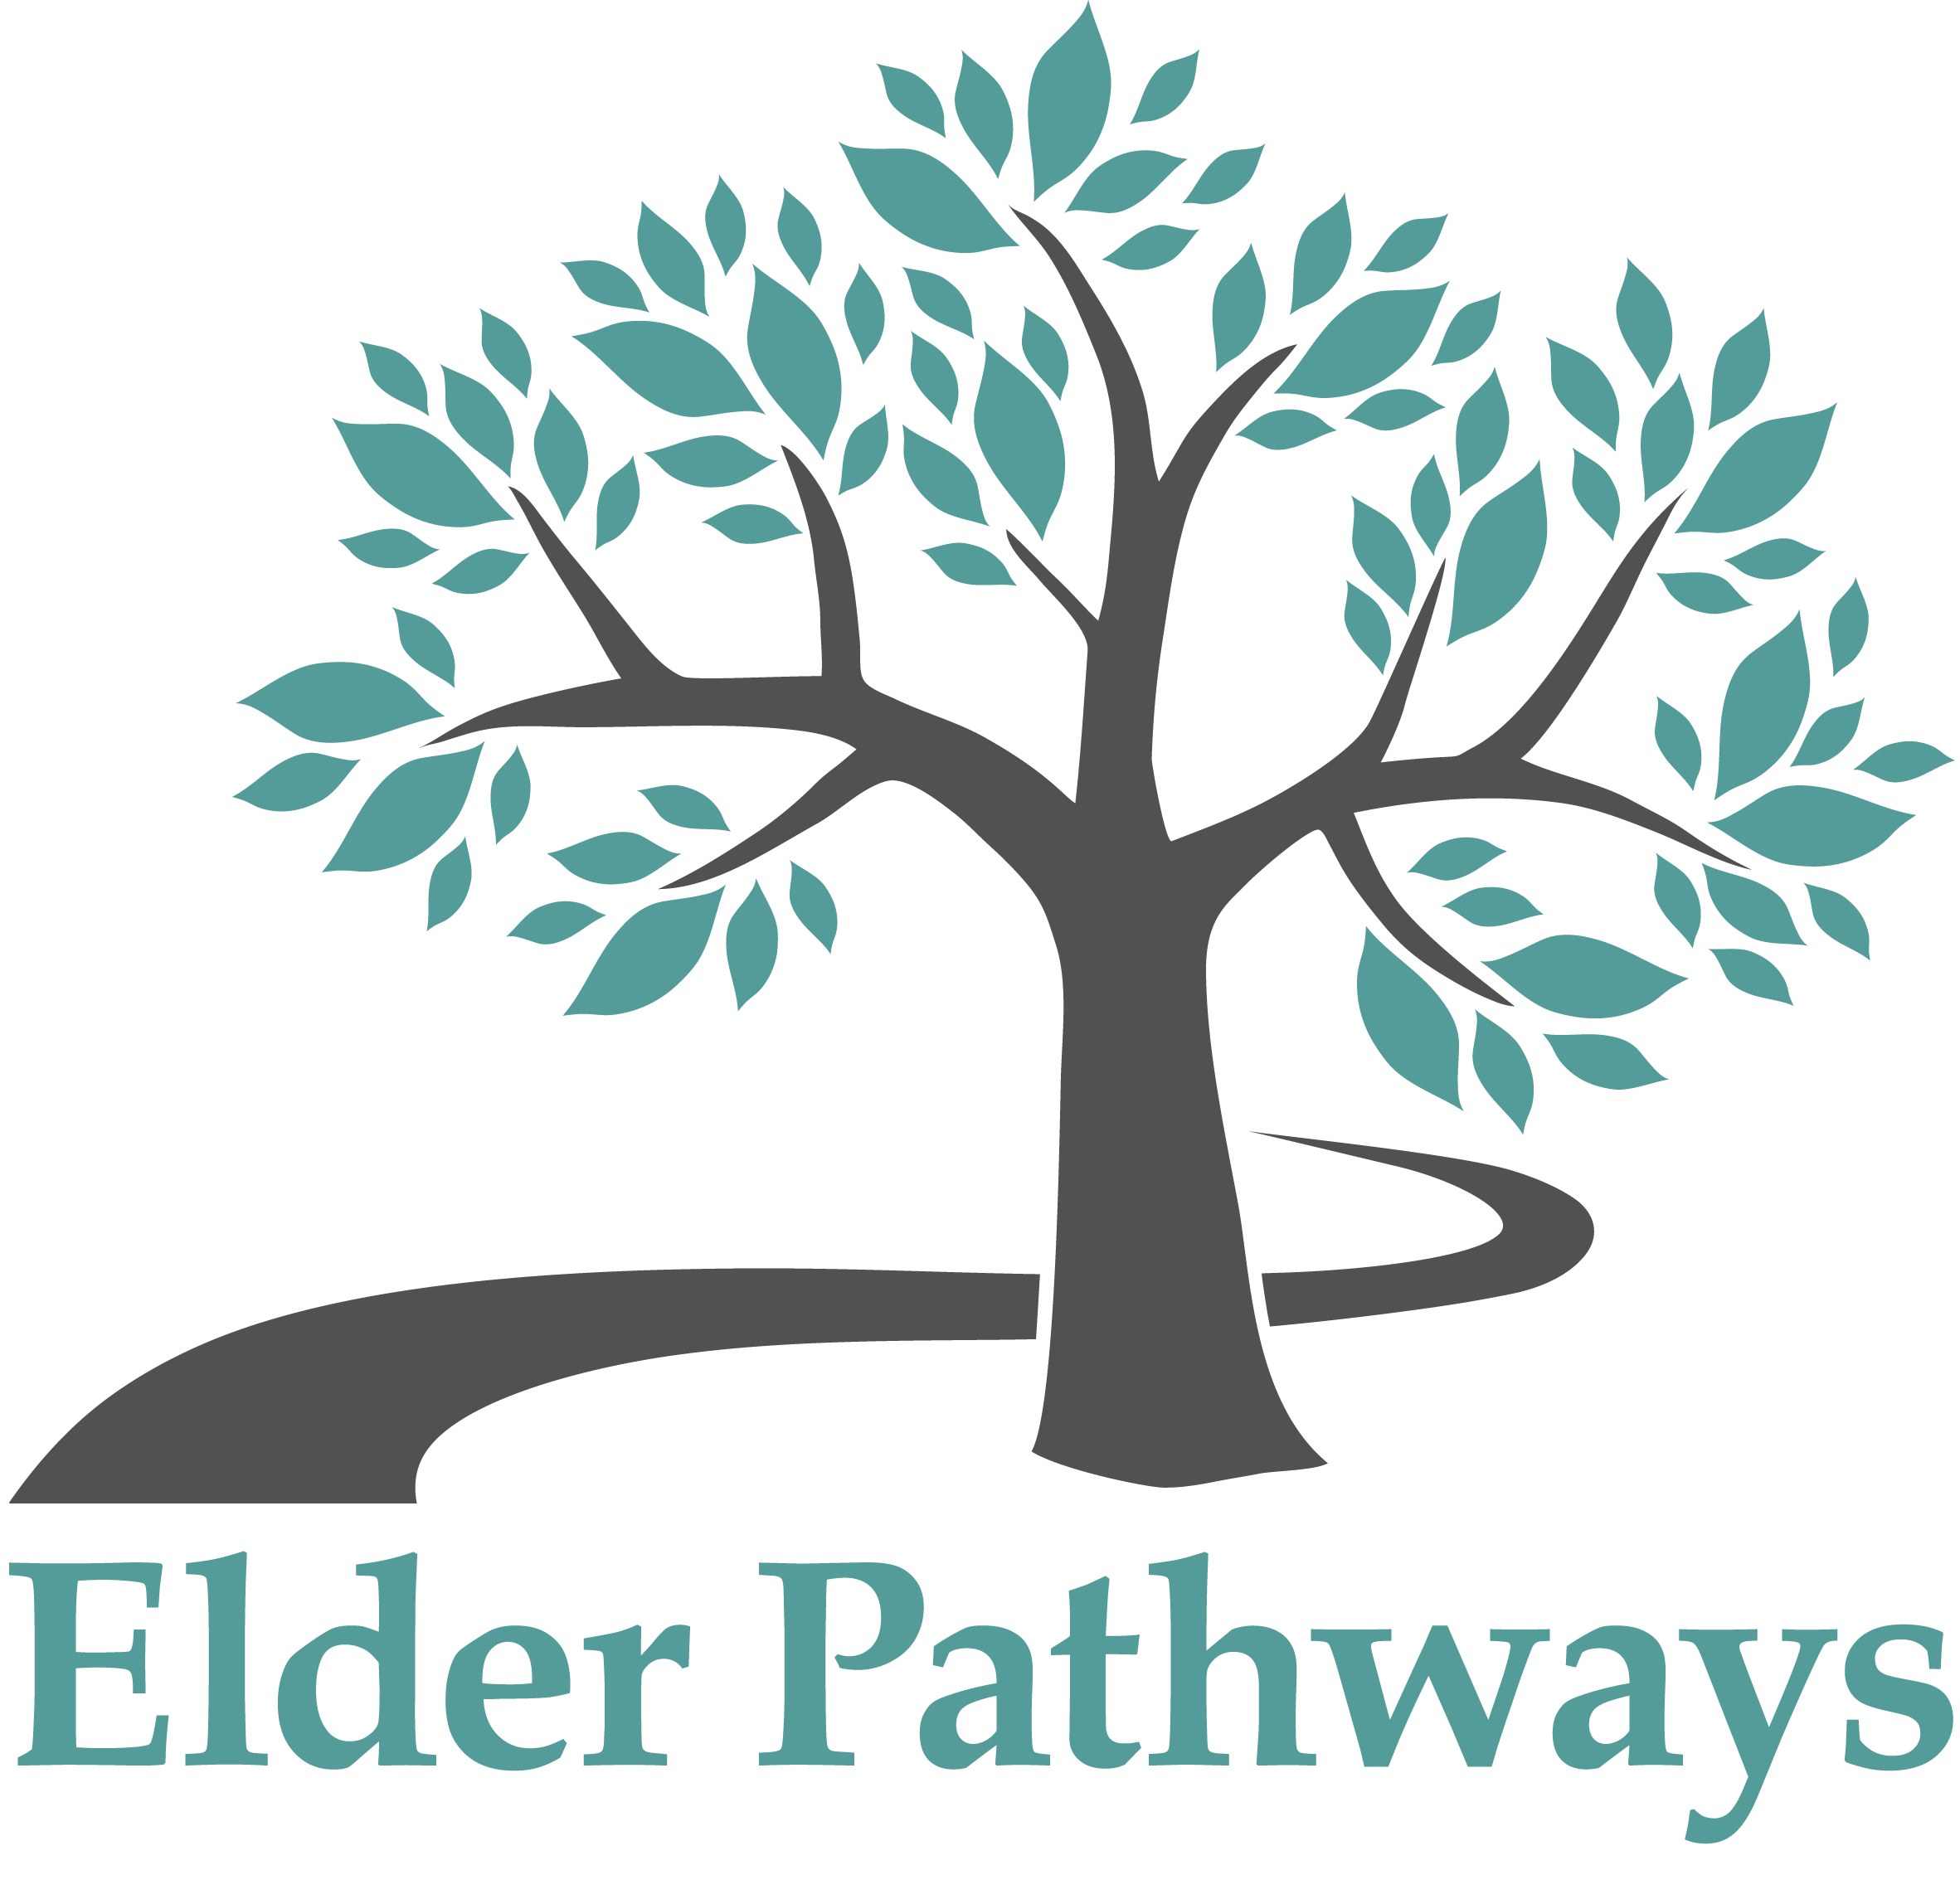 ElderPathways-logo